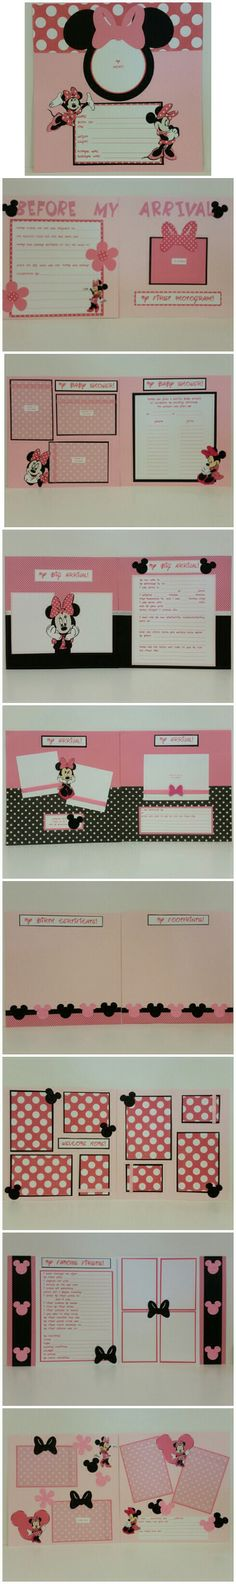 22 Best Minnie Mouse Baby Book And Scrapbook Images On Pinterest